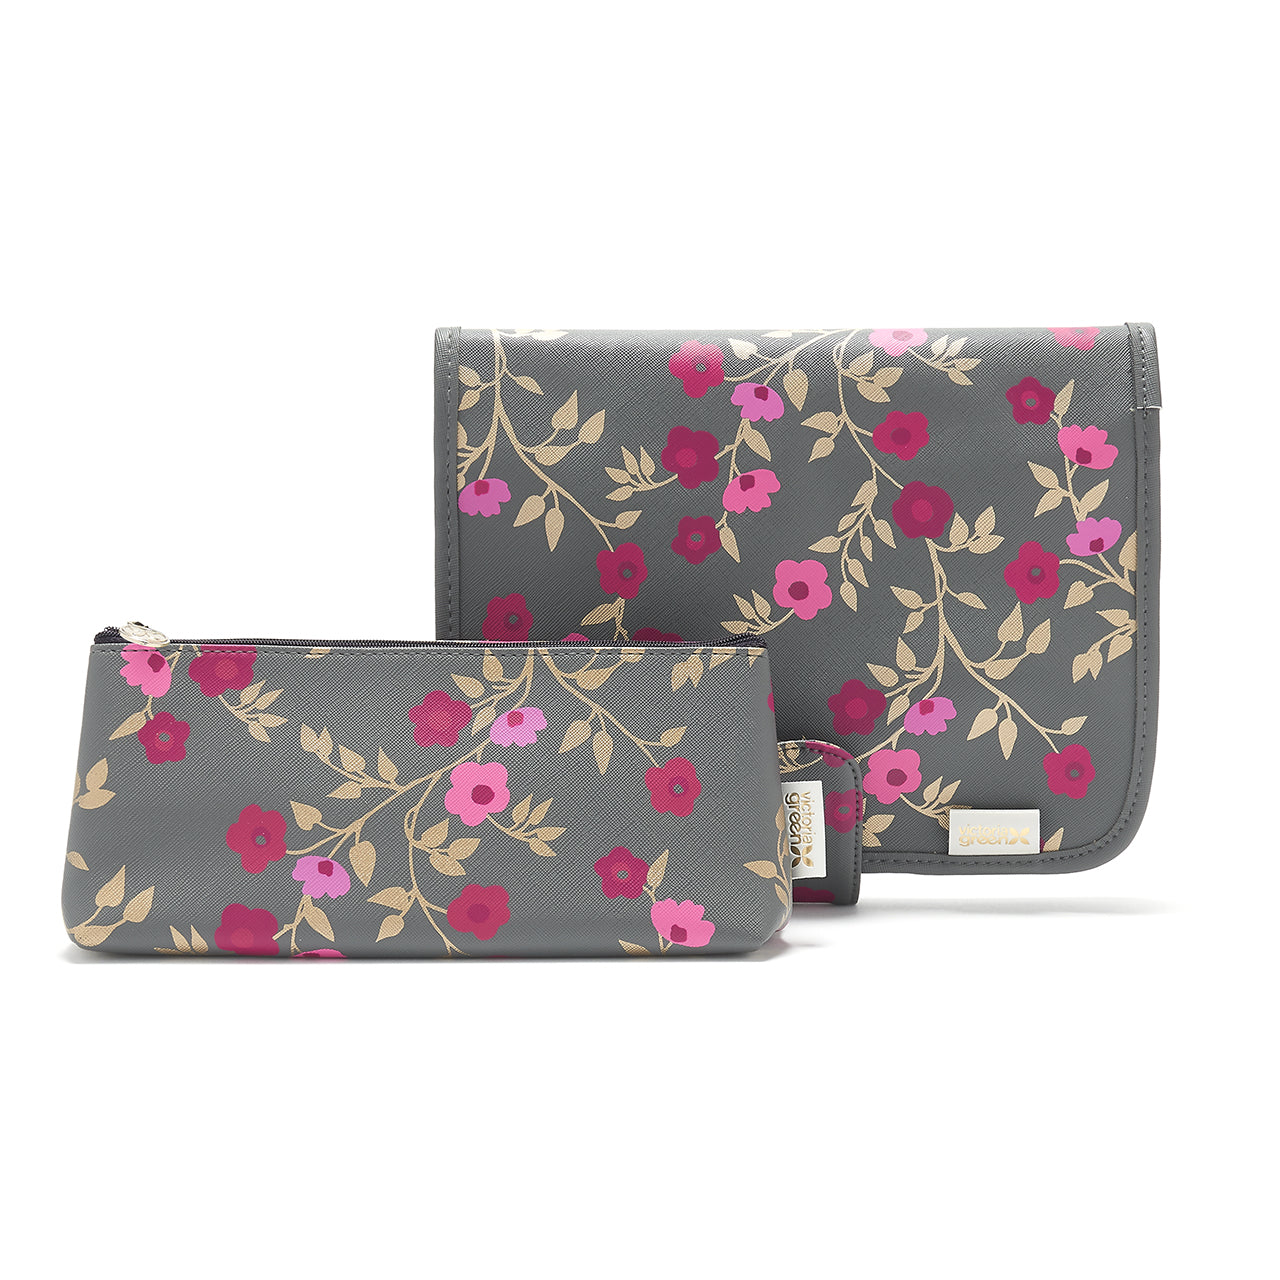 d0d137eb2ed5 Product image 1 gift sets for women in floral pattern. Product image 2 hanging  beauty makeup bag ...